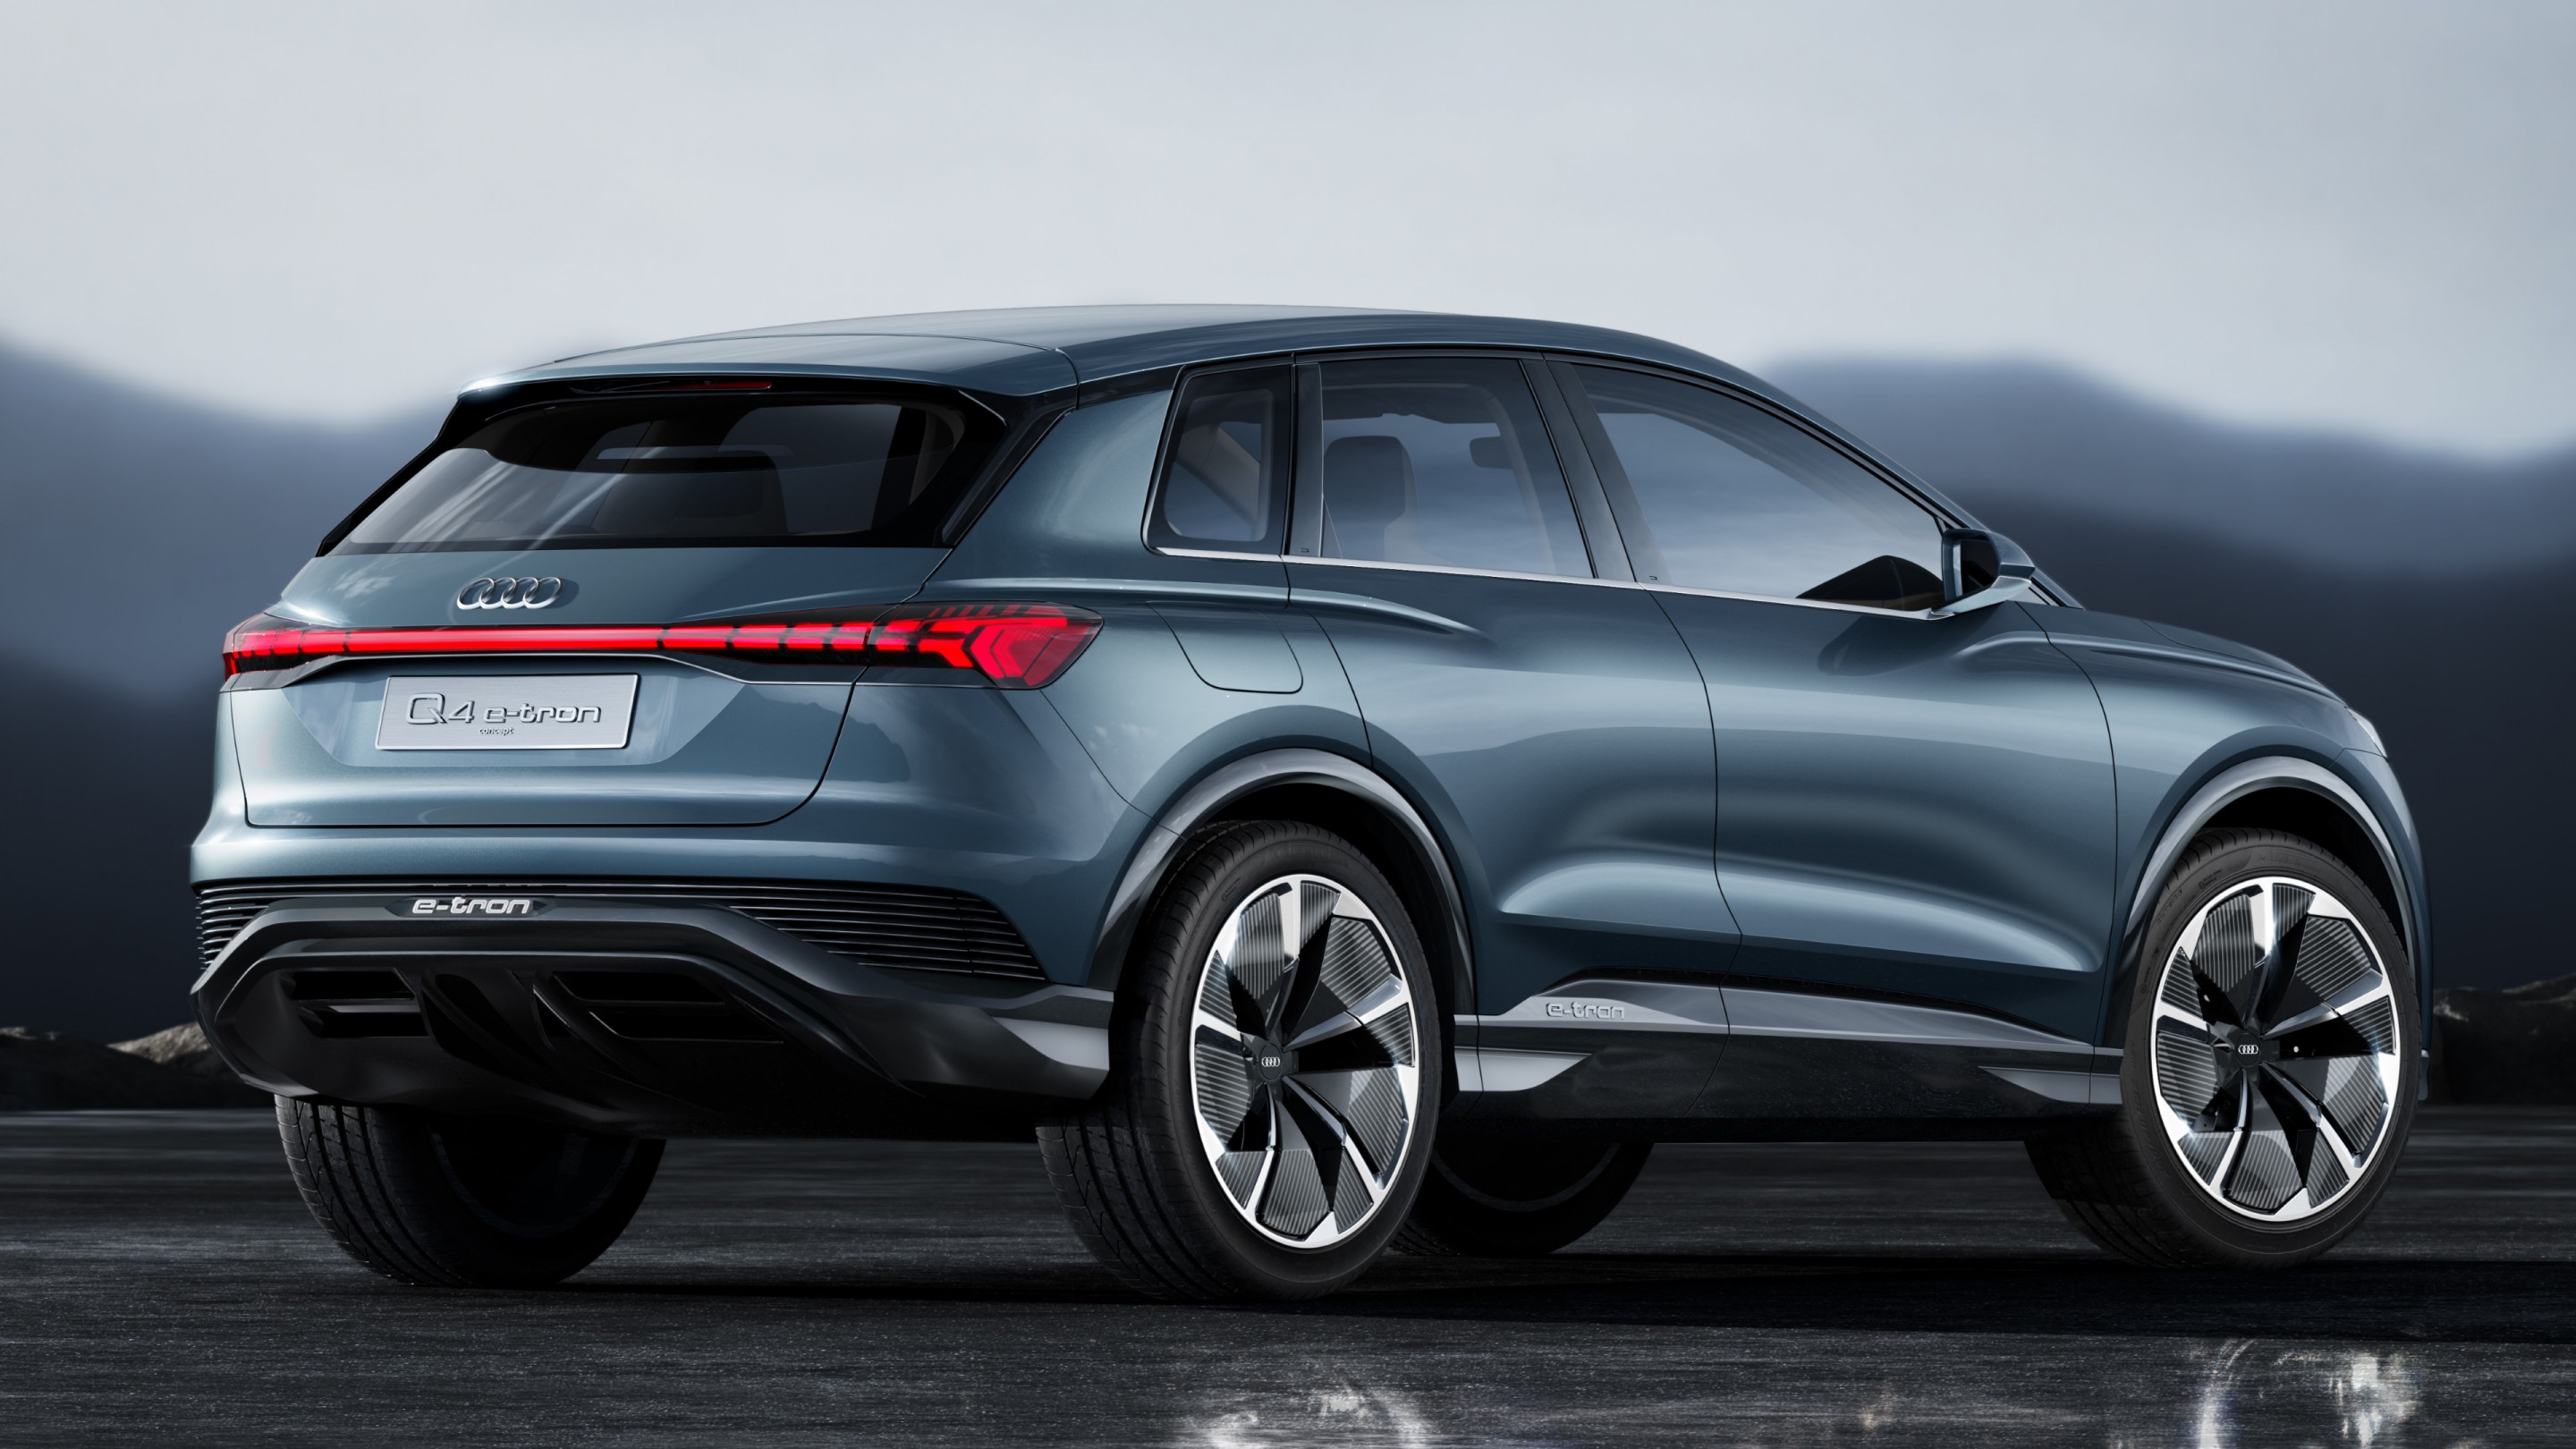 Audi Q4 e tron wallpaper 2880x1620